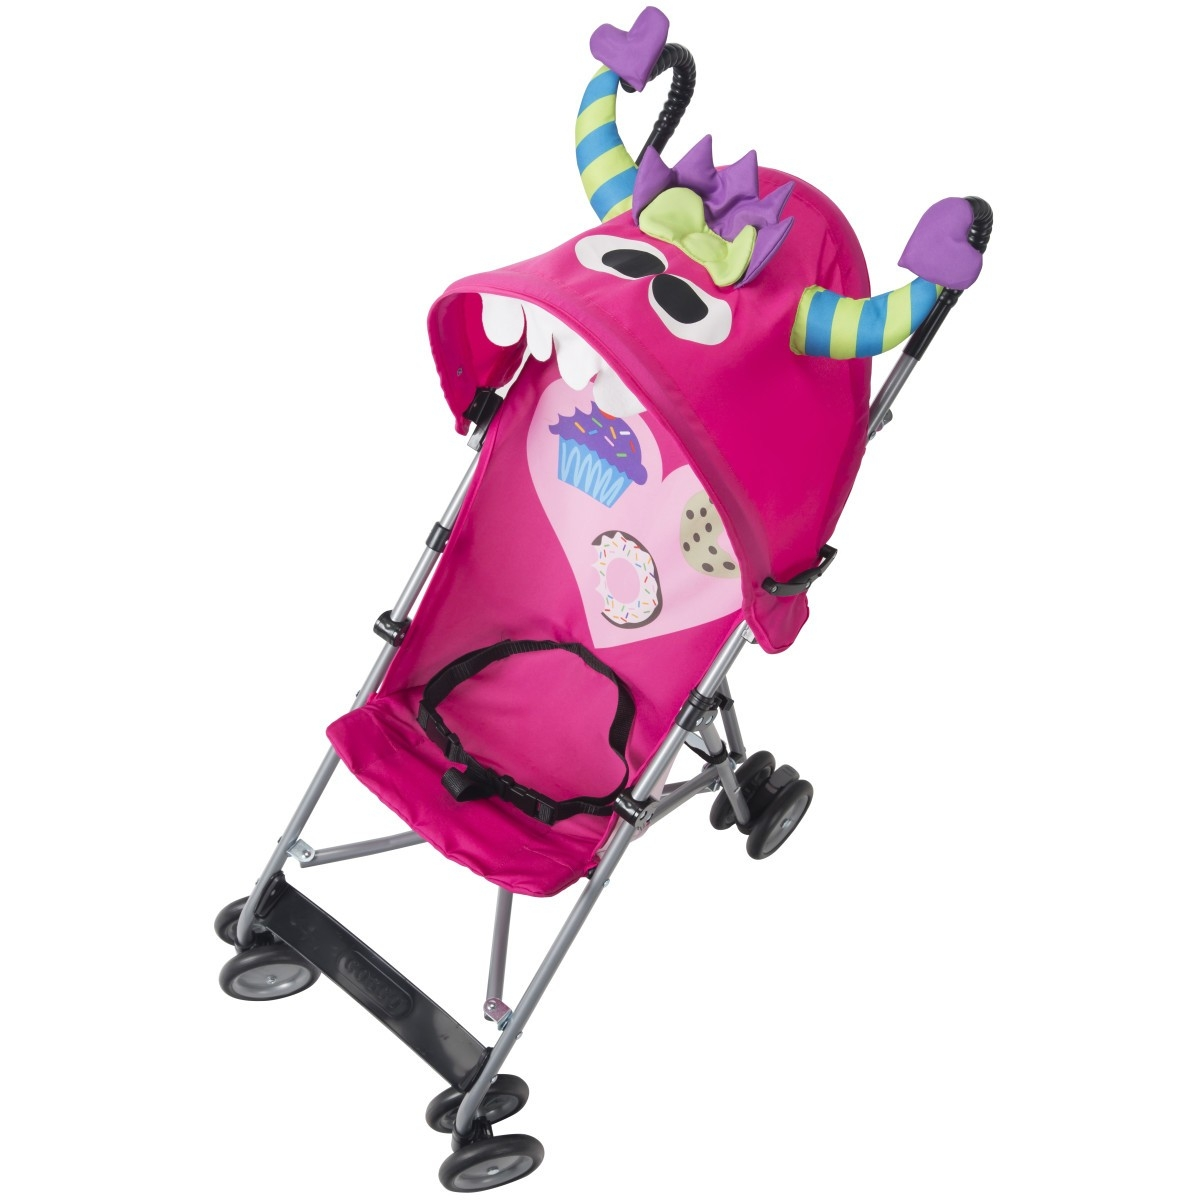 Cosco Monster Sheller Umbrella Stroller with Canopy - Lawazm